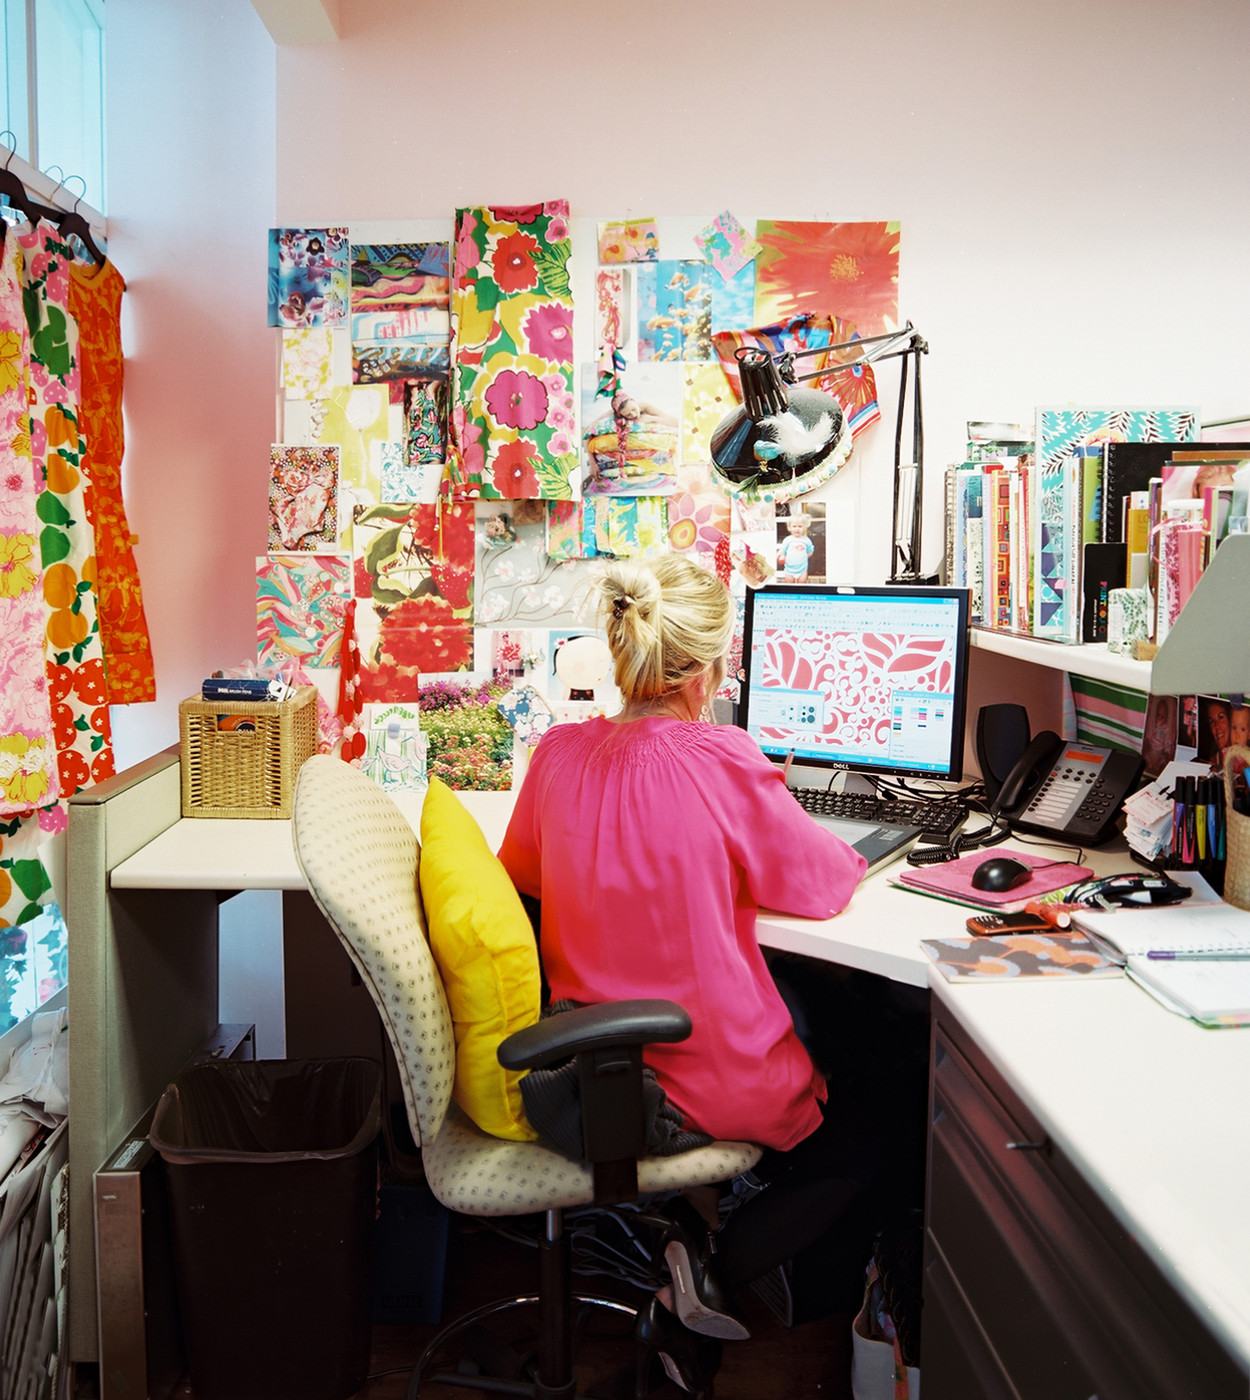 Lilly Pulitzer Photos 4 Of 26